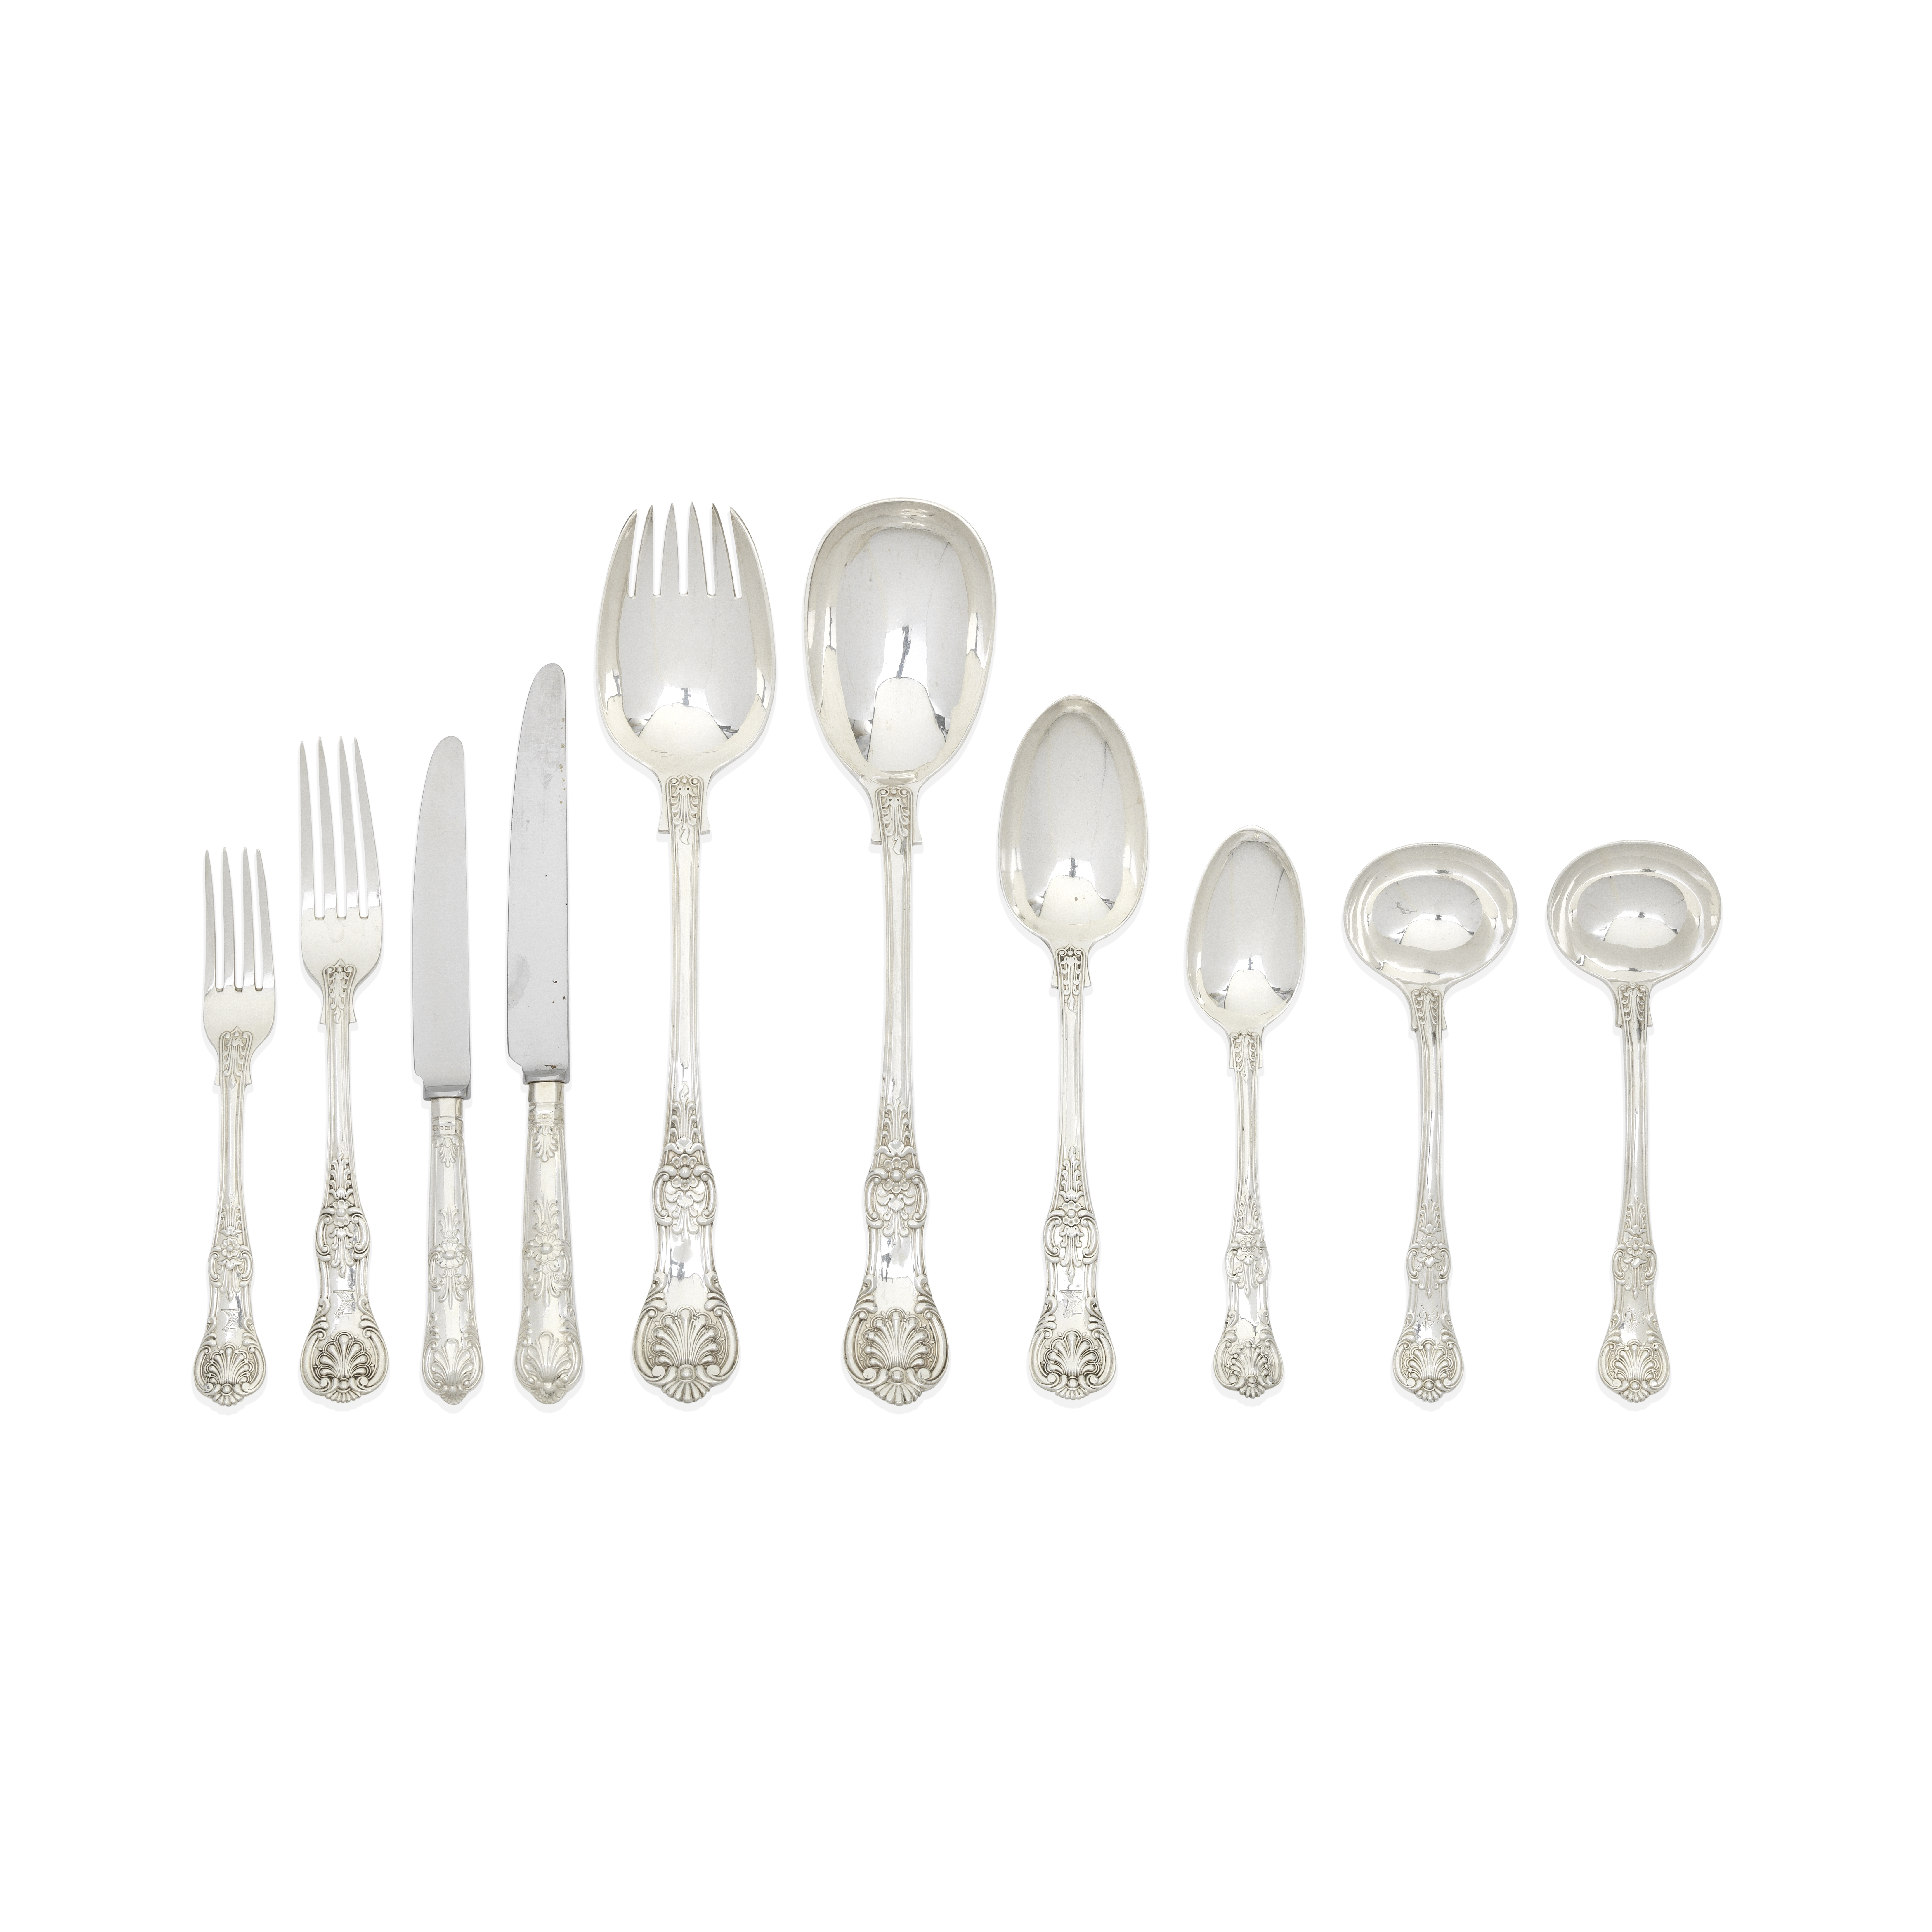 A silver part Queen's pattern flatware service George Adams, London 1848 - 1868, with modern silv...